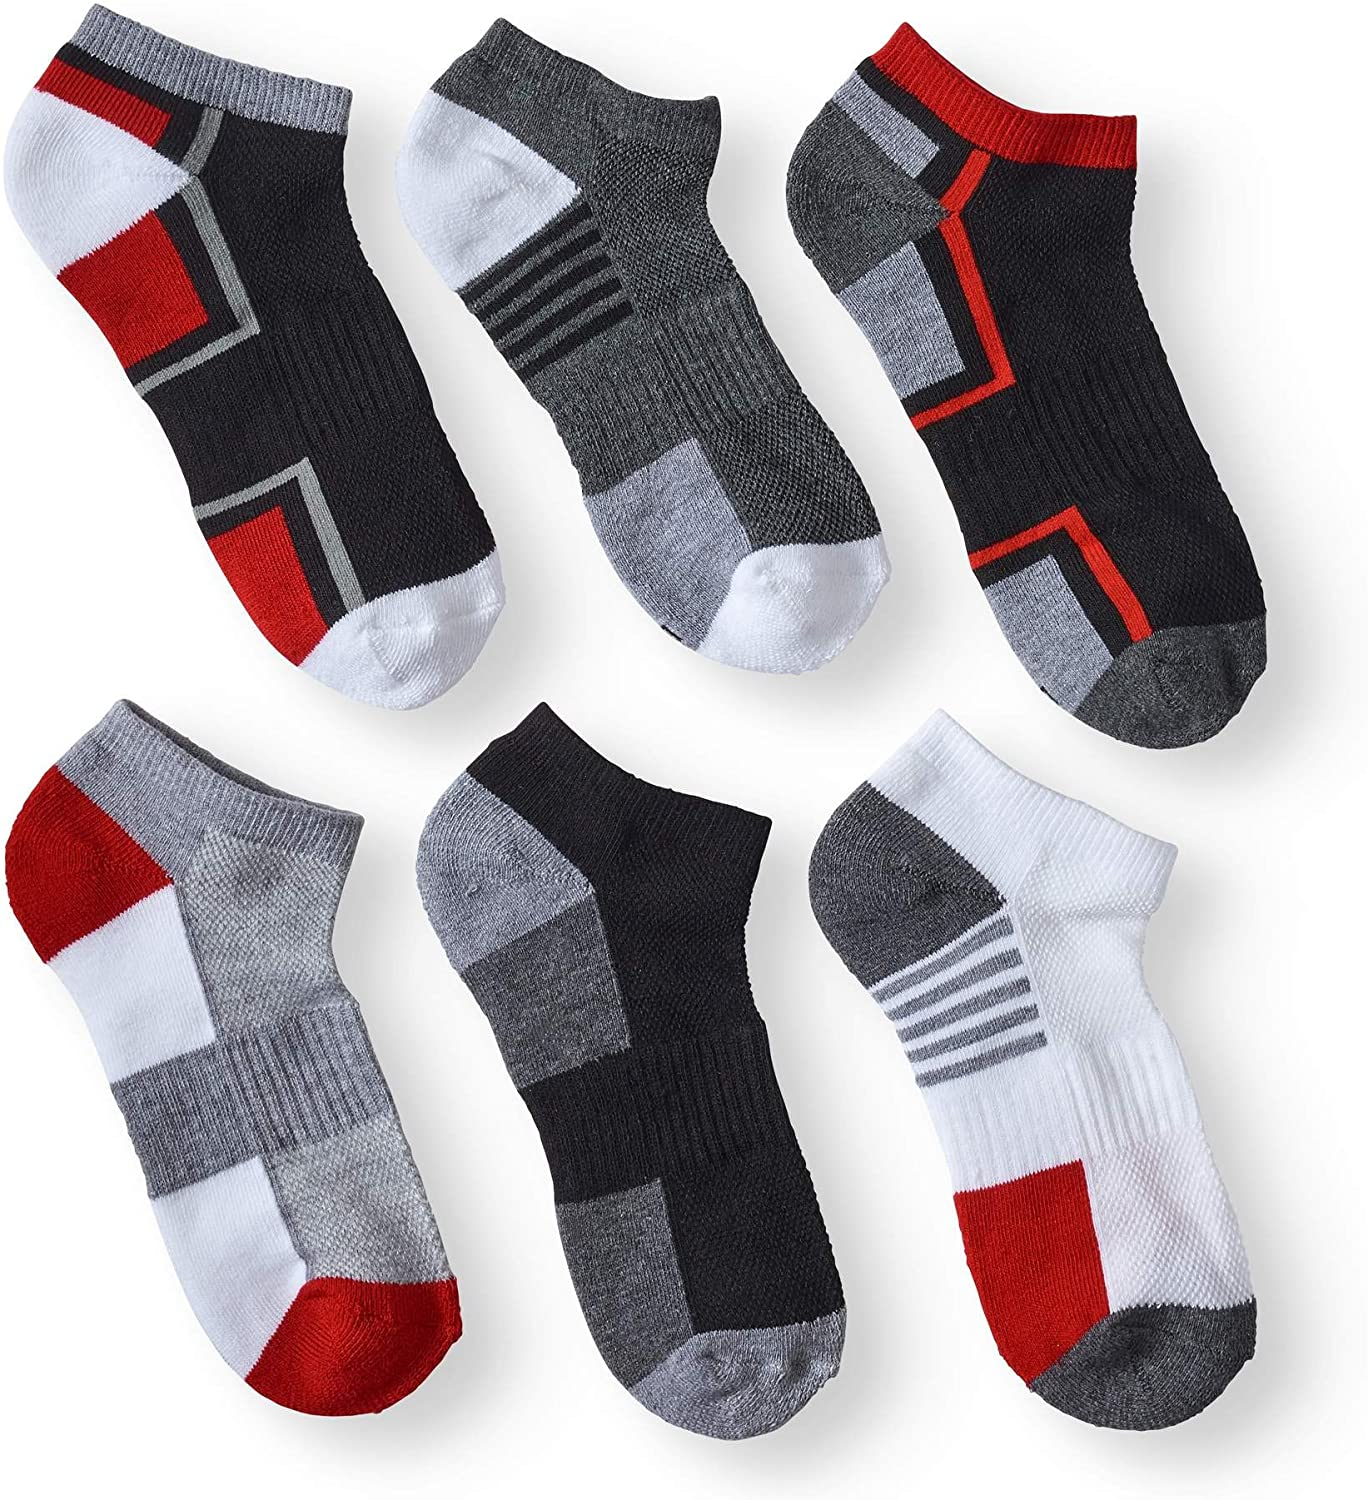 NEW Athletic Works Girls Liner Socks 6 Pair